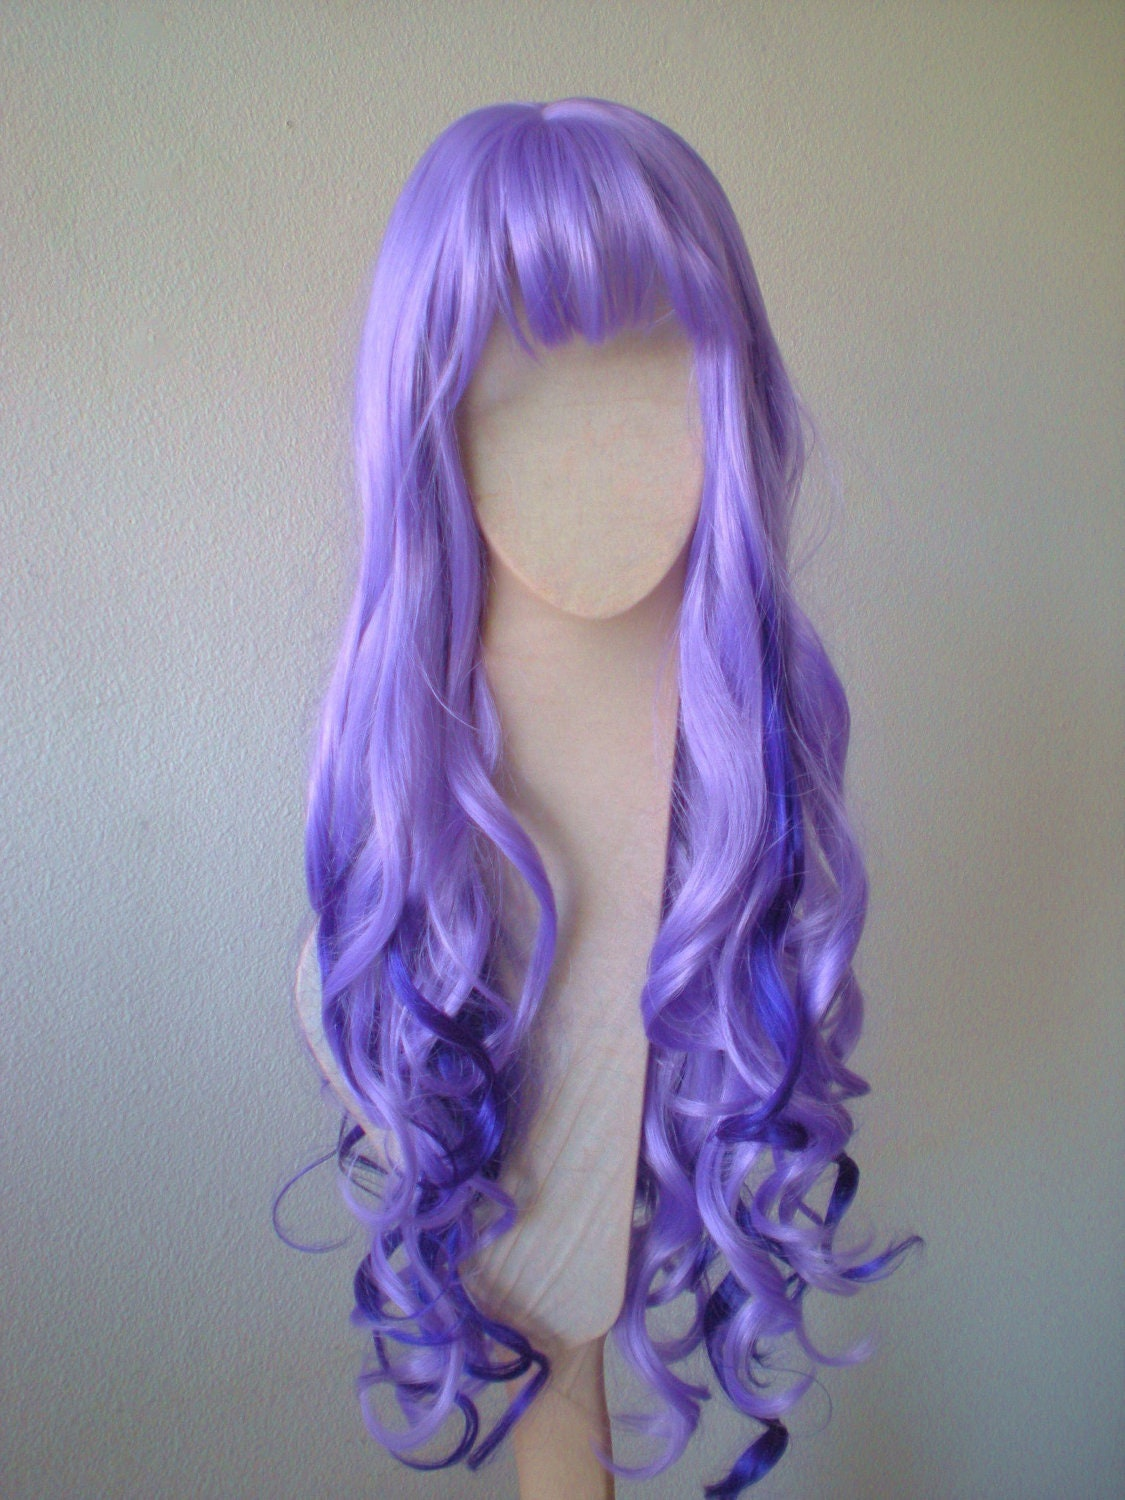 Purple Wig Dark Light Purple Wig Glamour Long Loose Curly